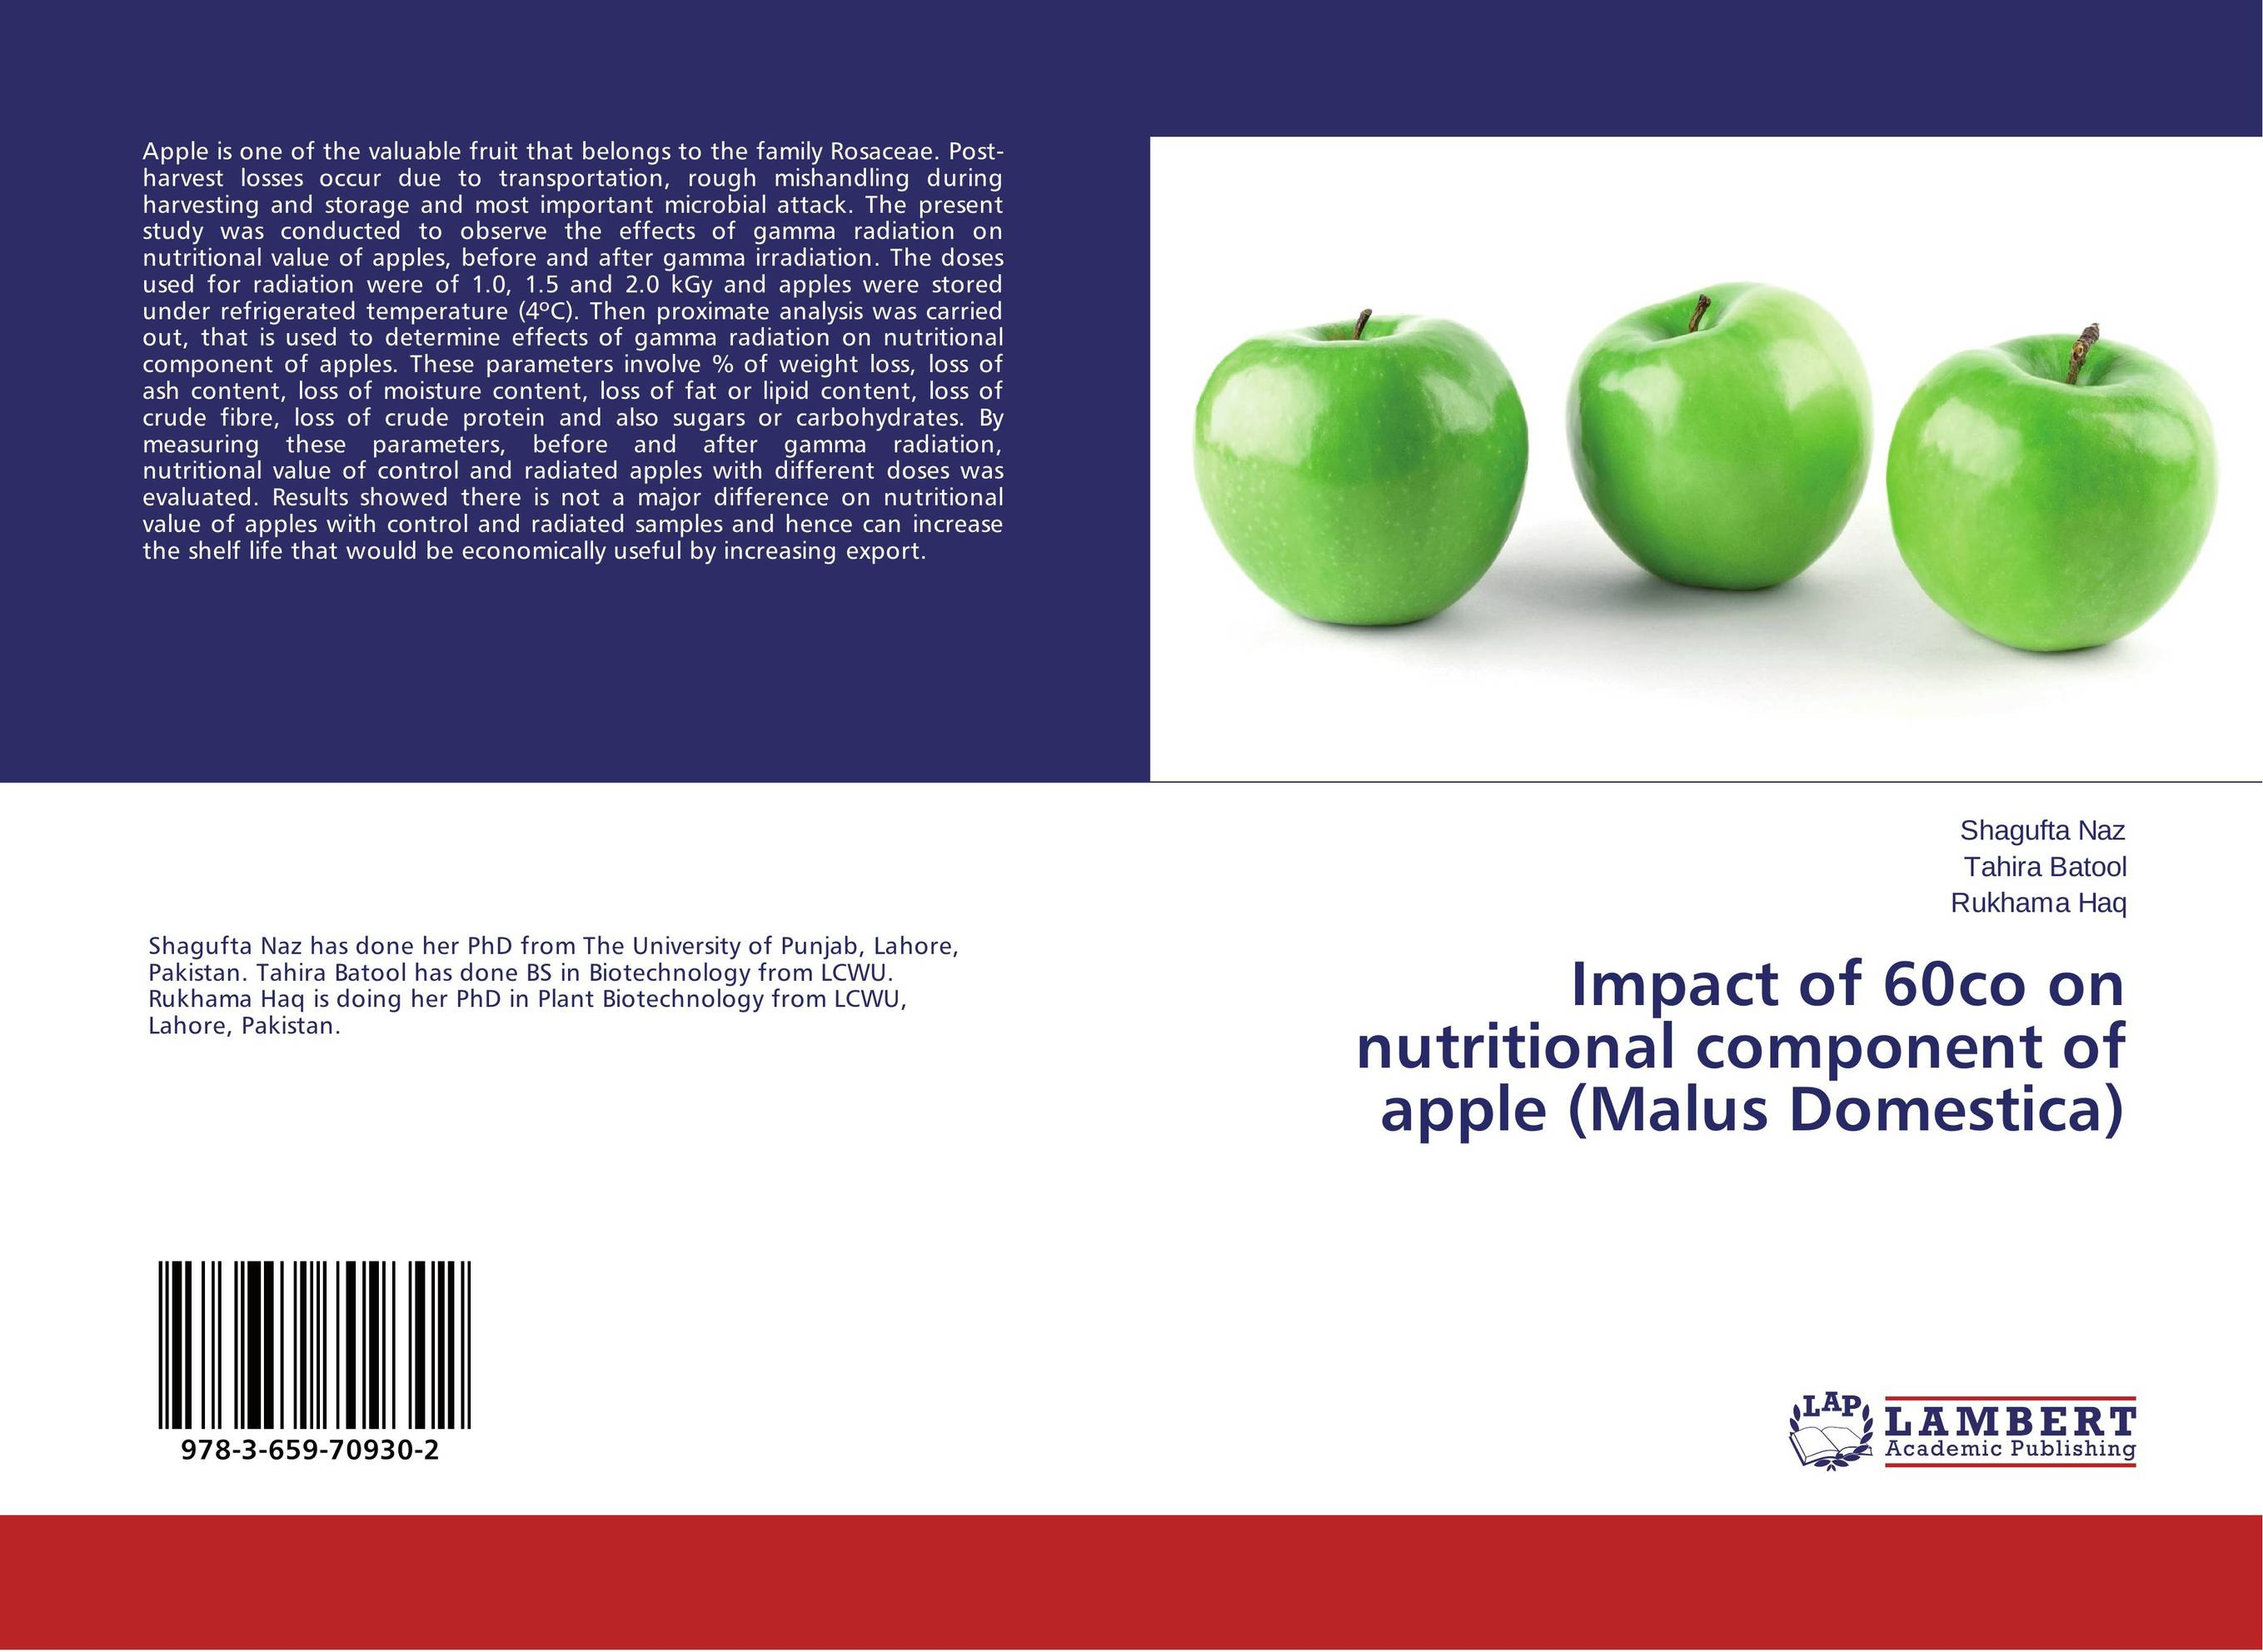 Impact of 60co on nutritional component of apple (Malus Domestica) the golden apples